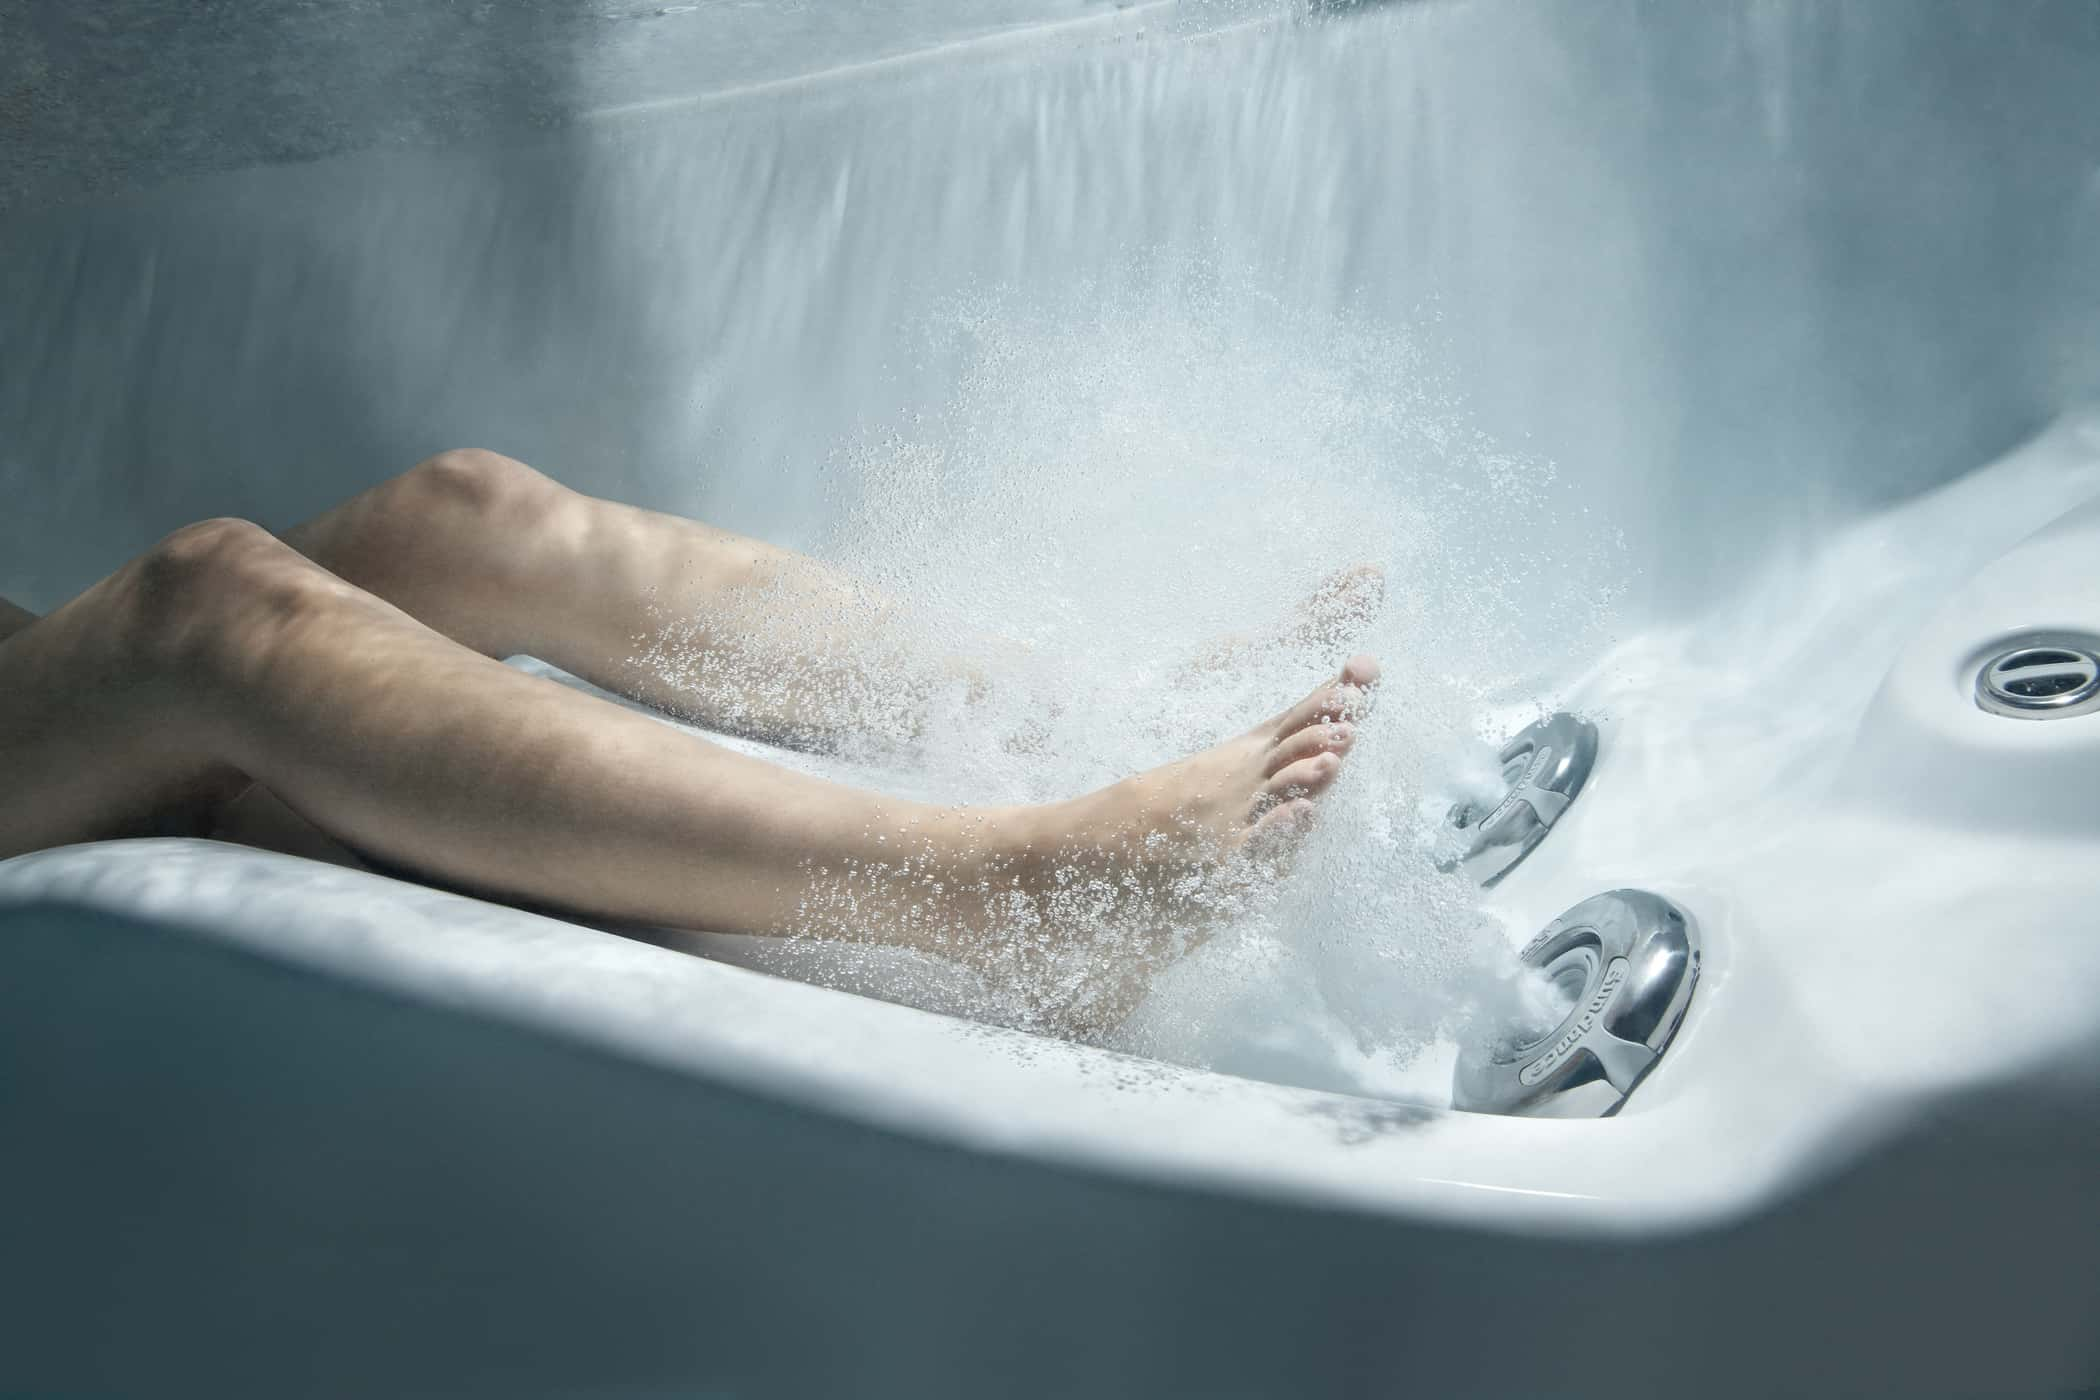 Person engaging in hot tub reflexology